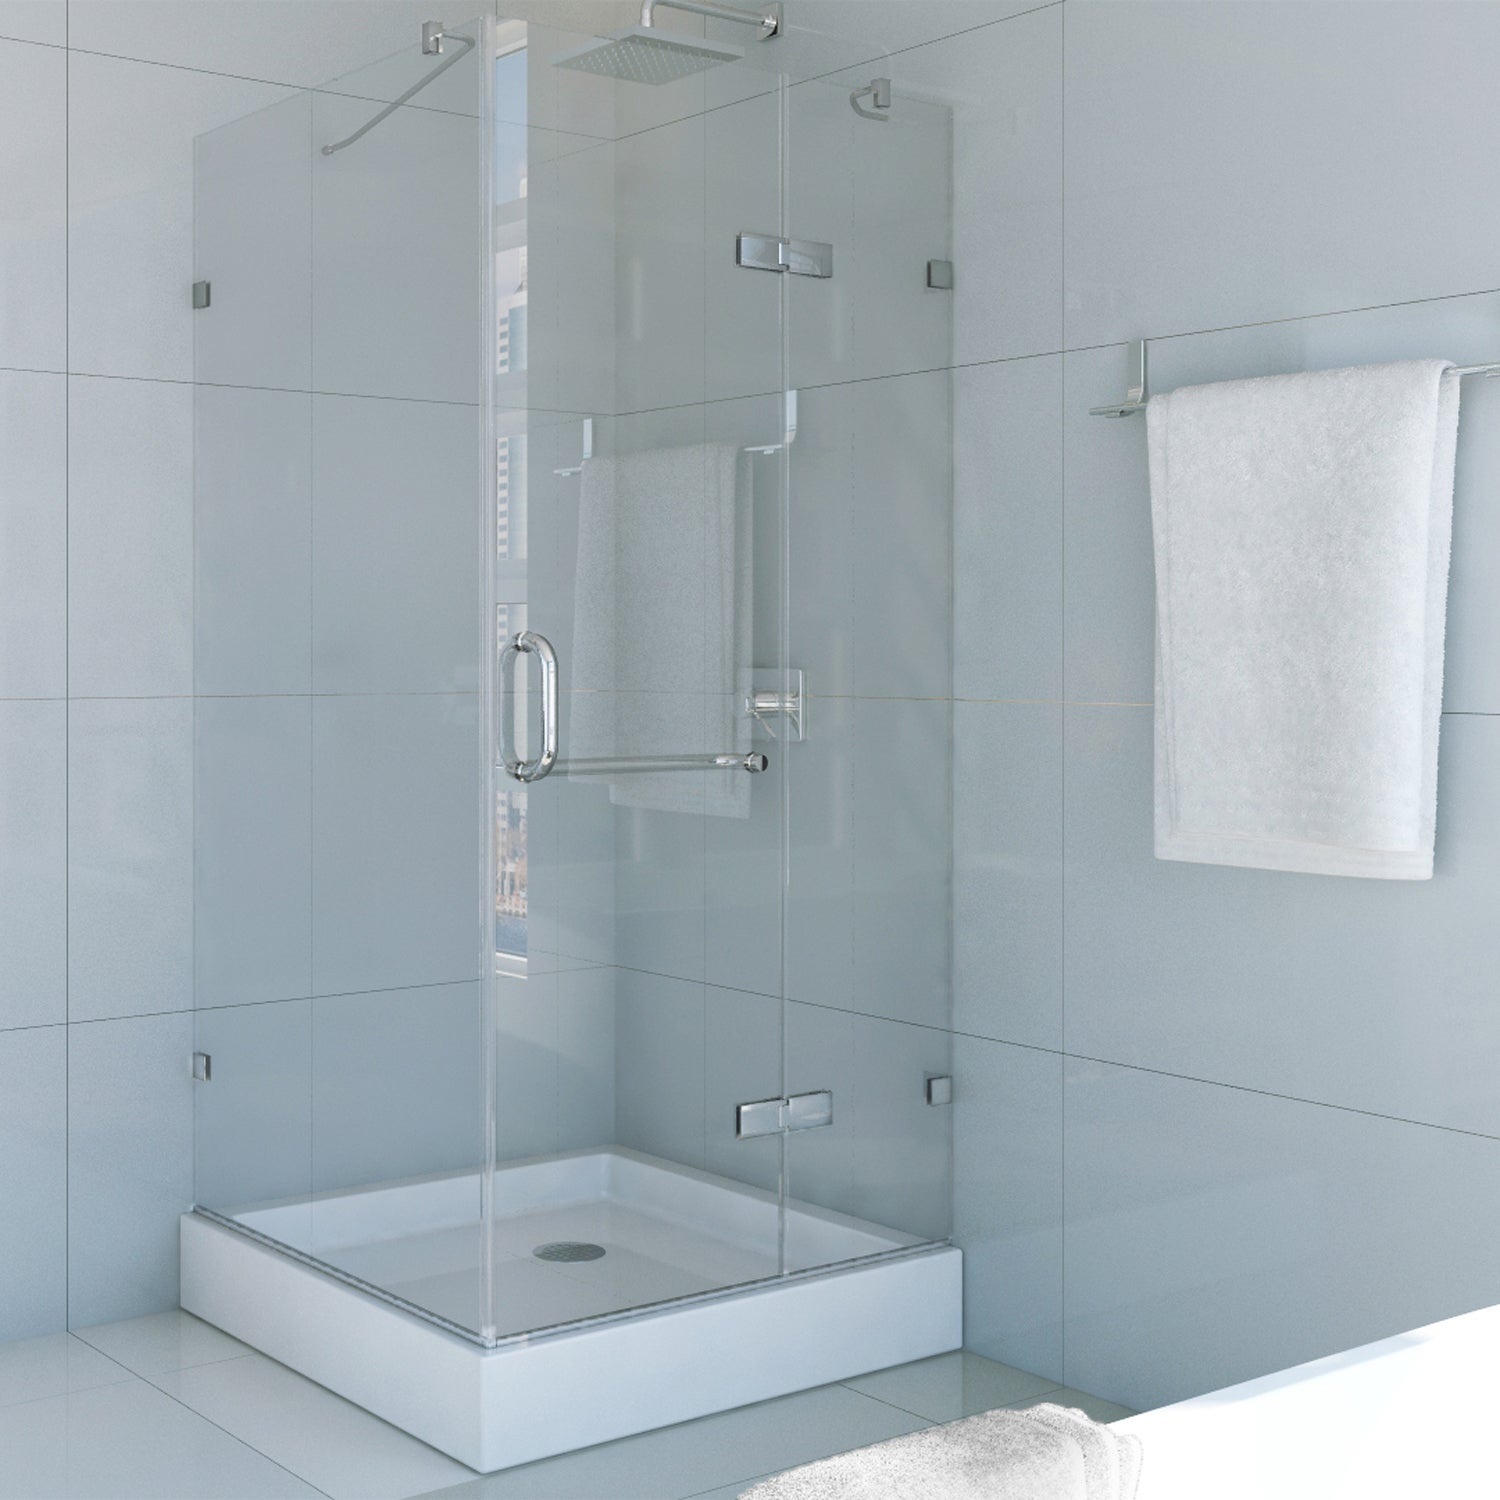 Shop VIGO Frameless Square Clear Shower Enclosure and Base (36 x 36 ...